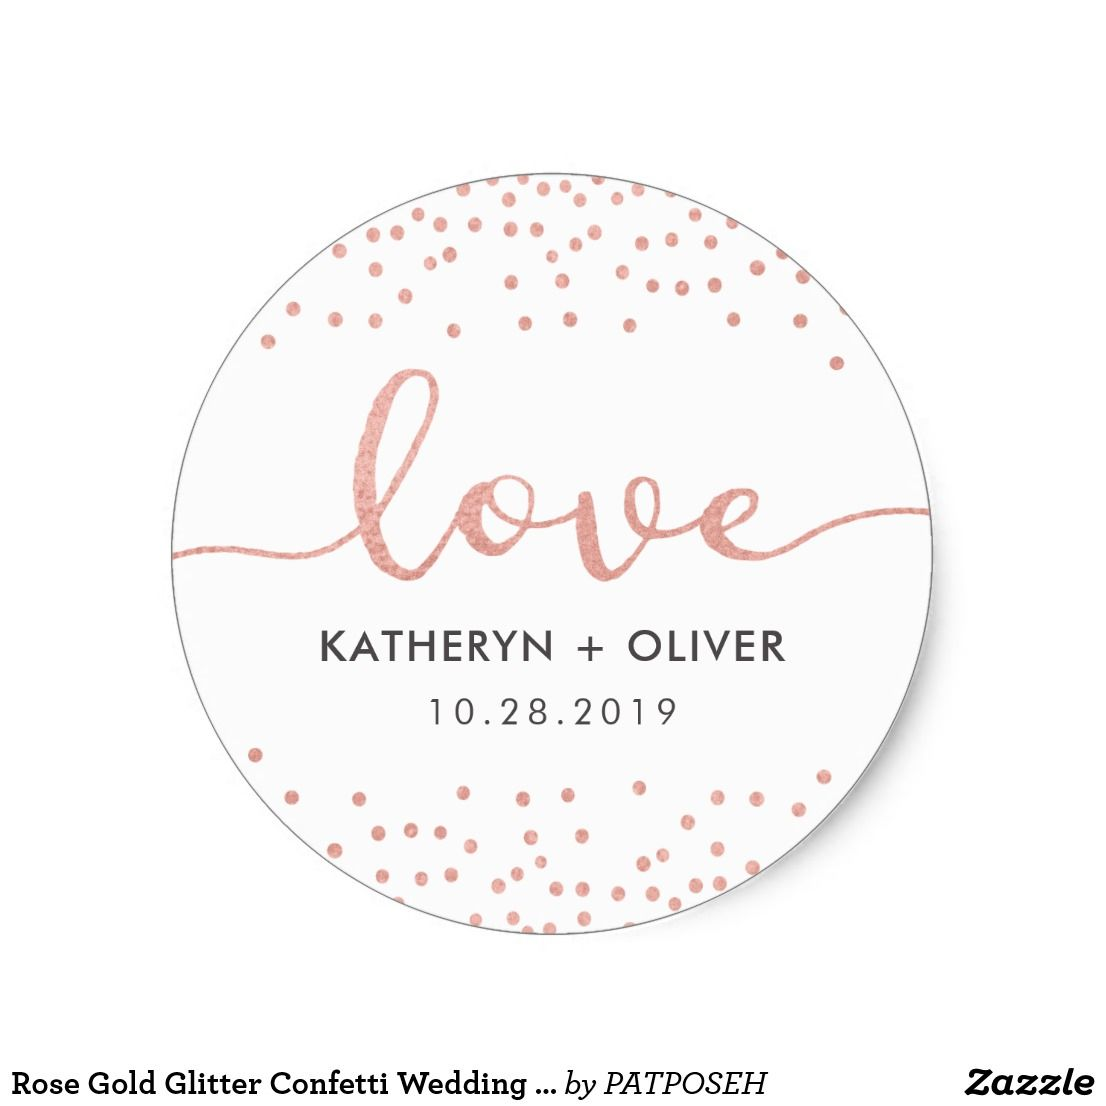 Rose Gold Glitter Confetti Wedding Sticker Favors | Glitter confetti ...